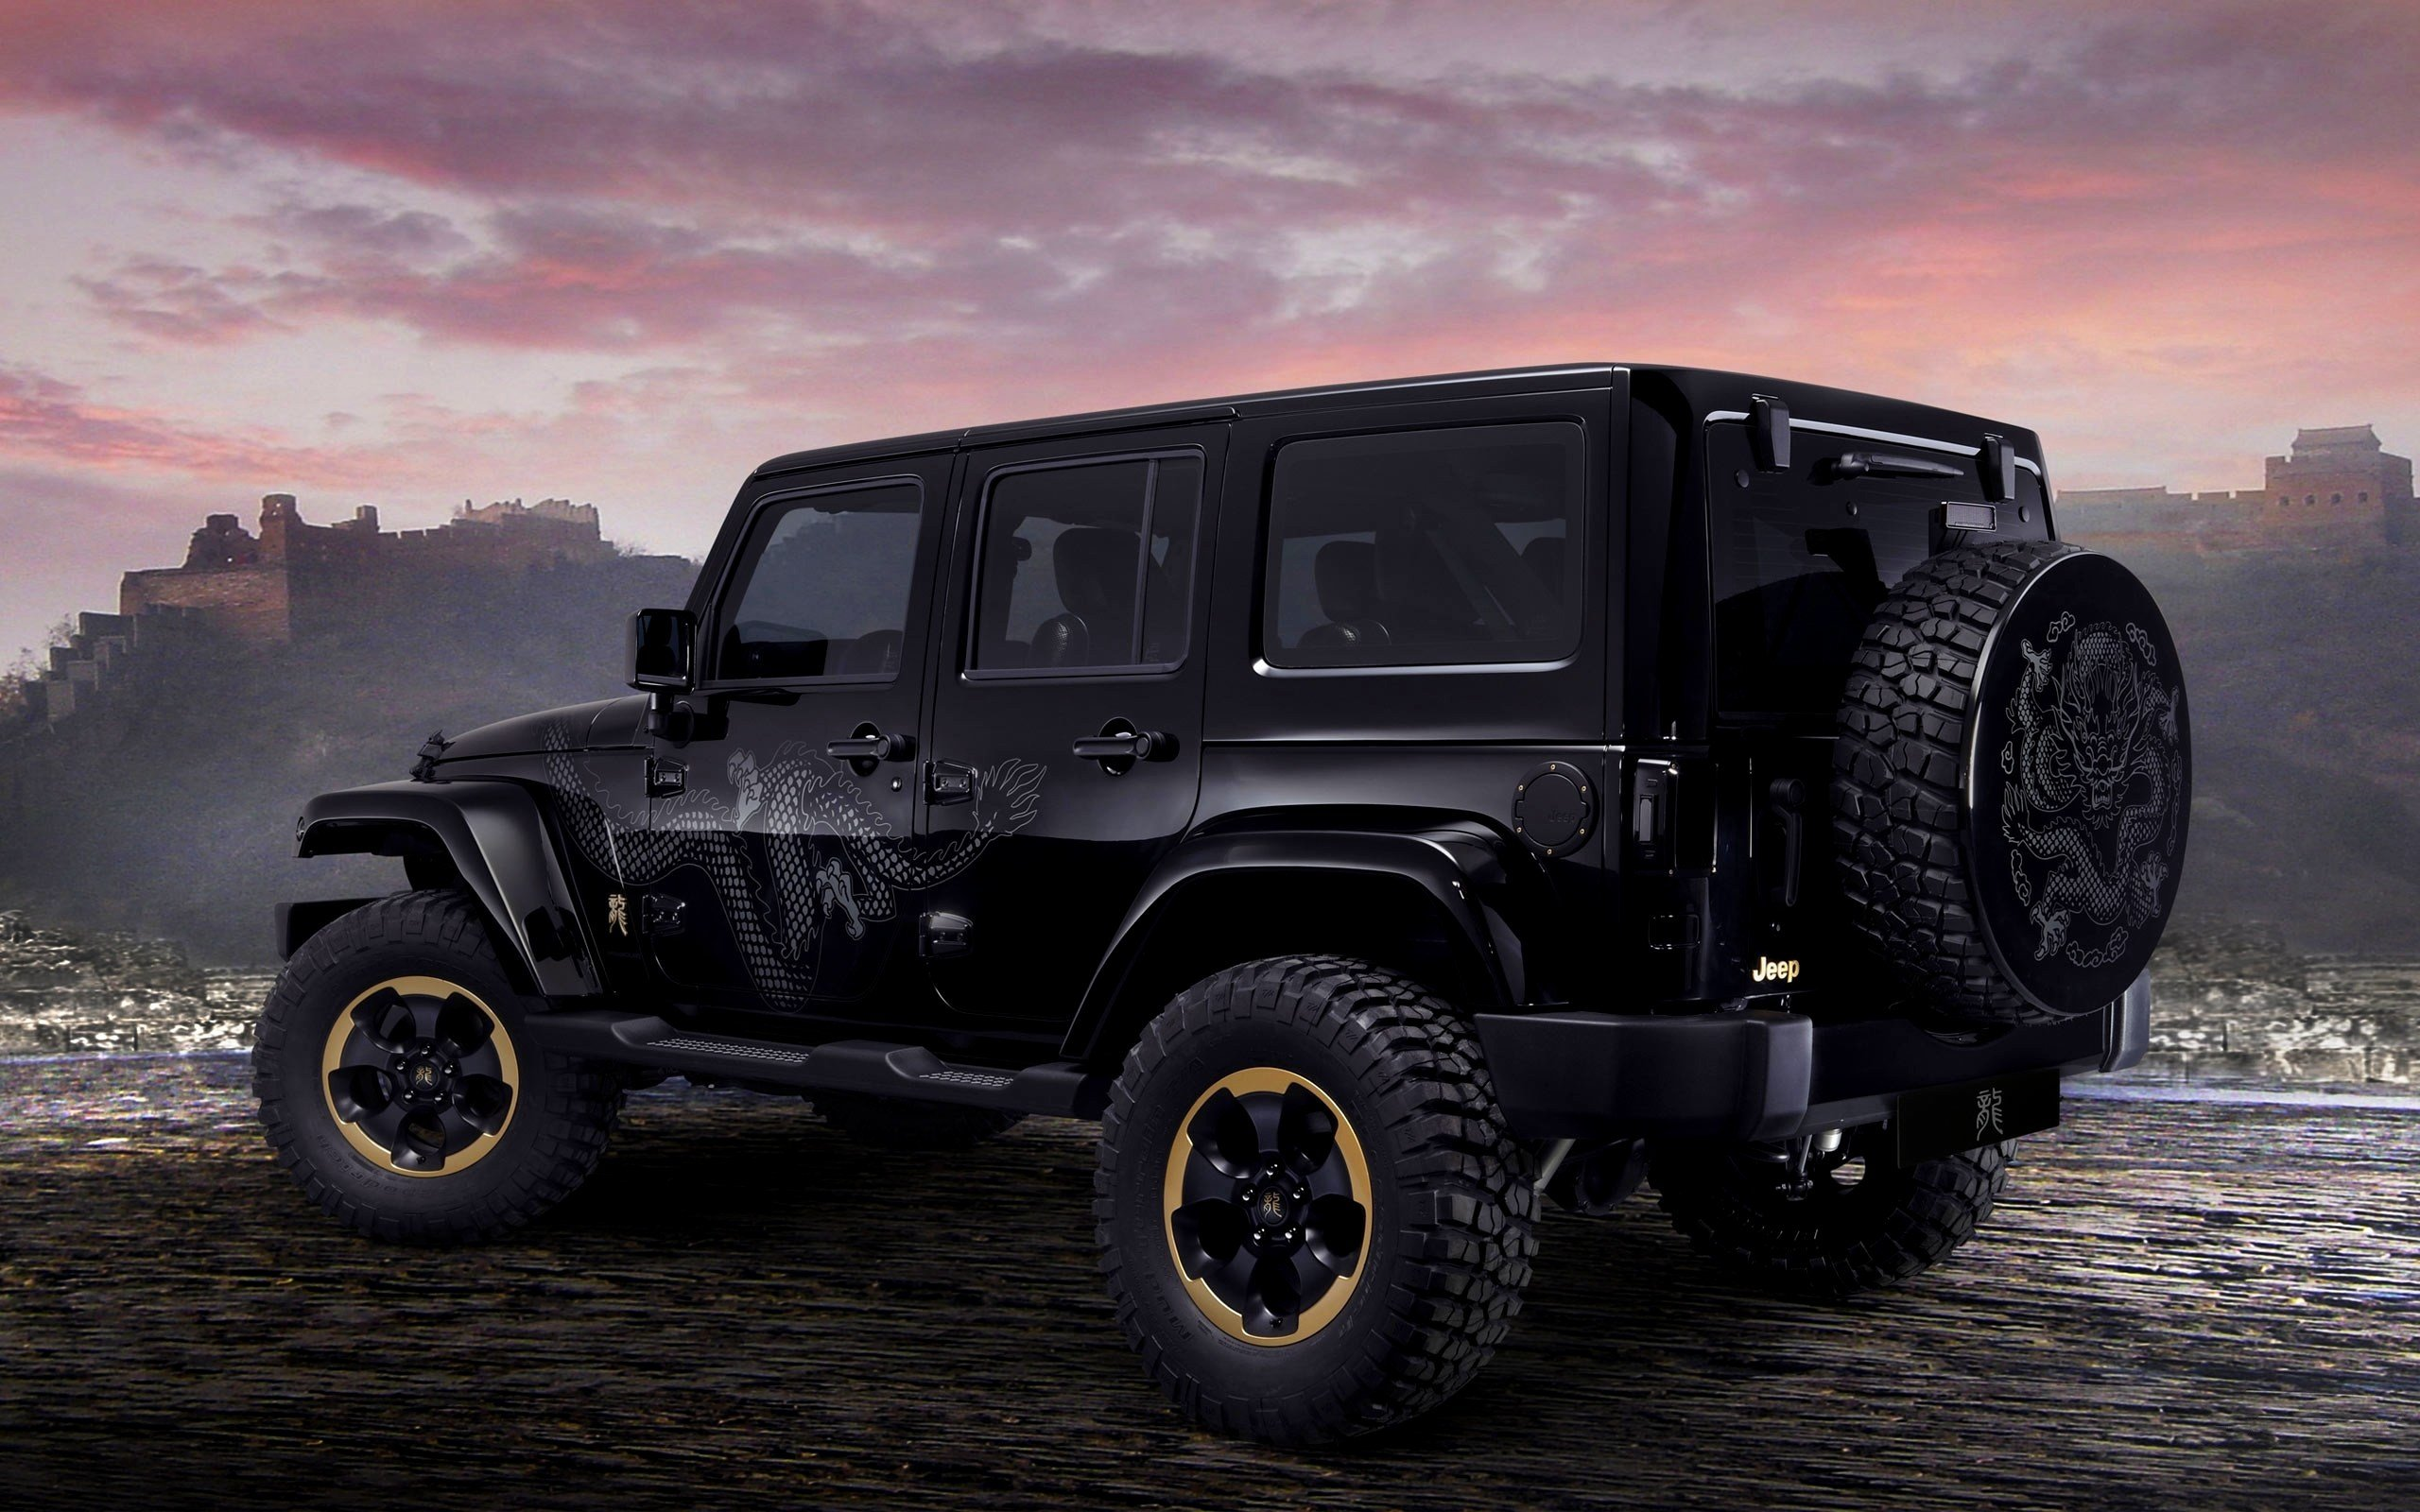 New Jeep Wrangler Dragon Design Hd Wallpaper Background On This Month